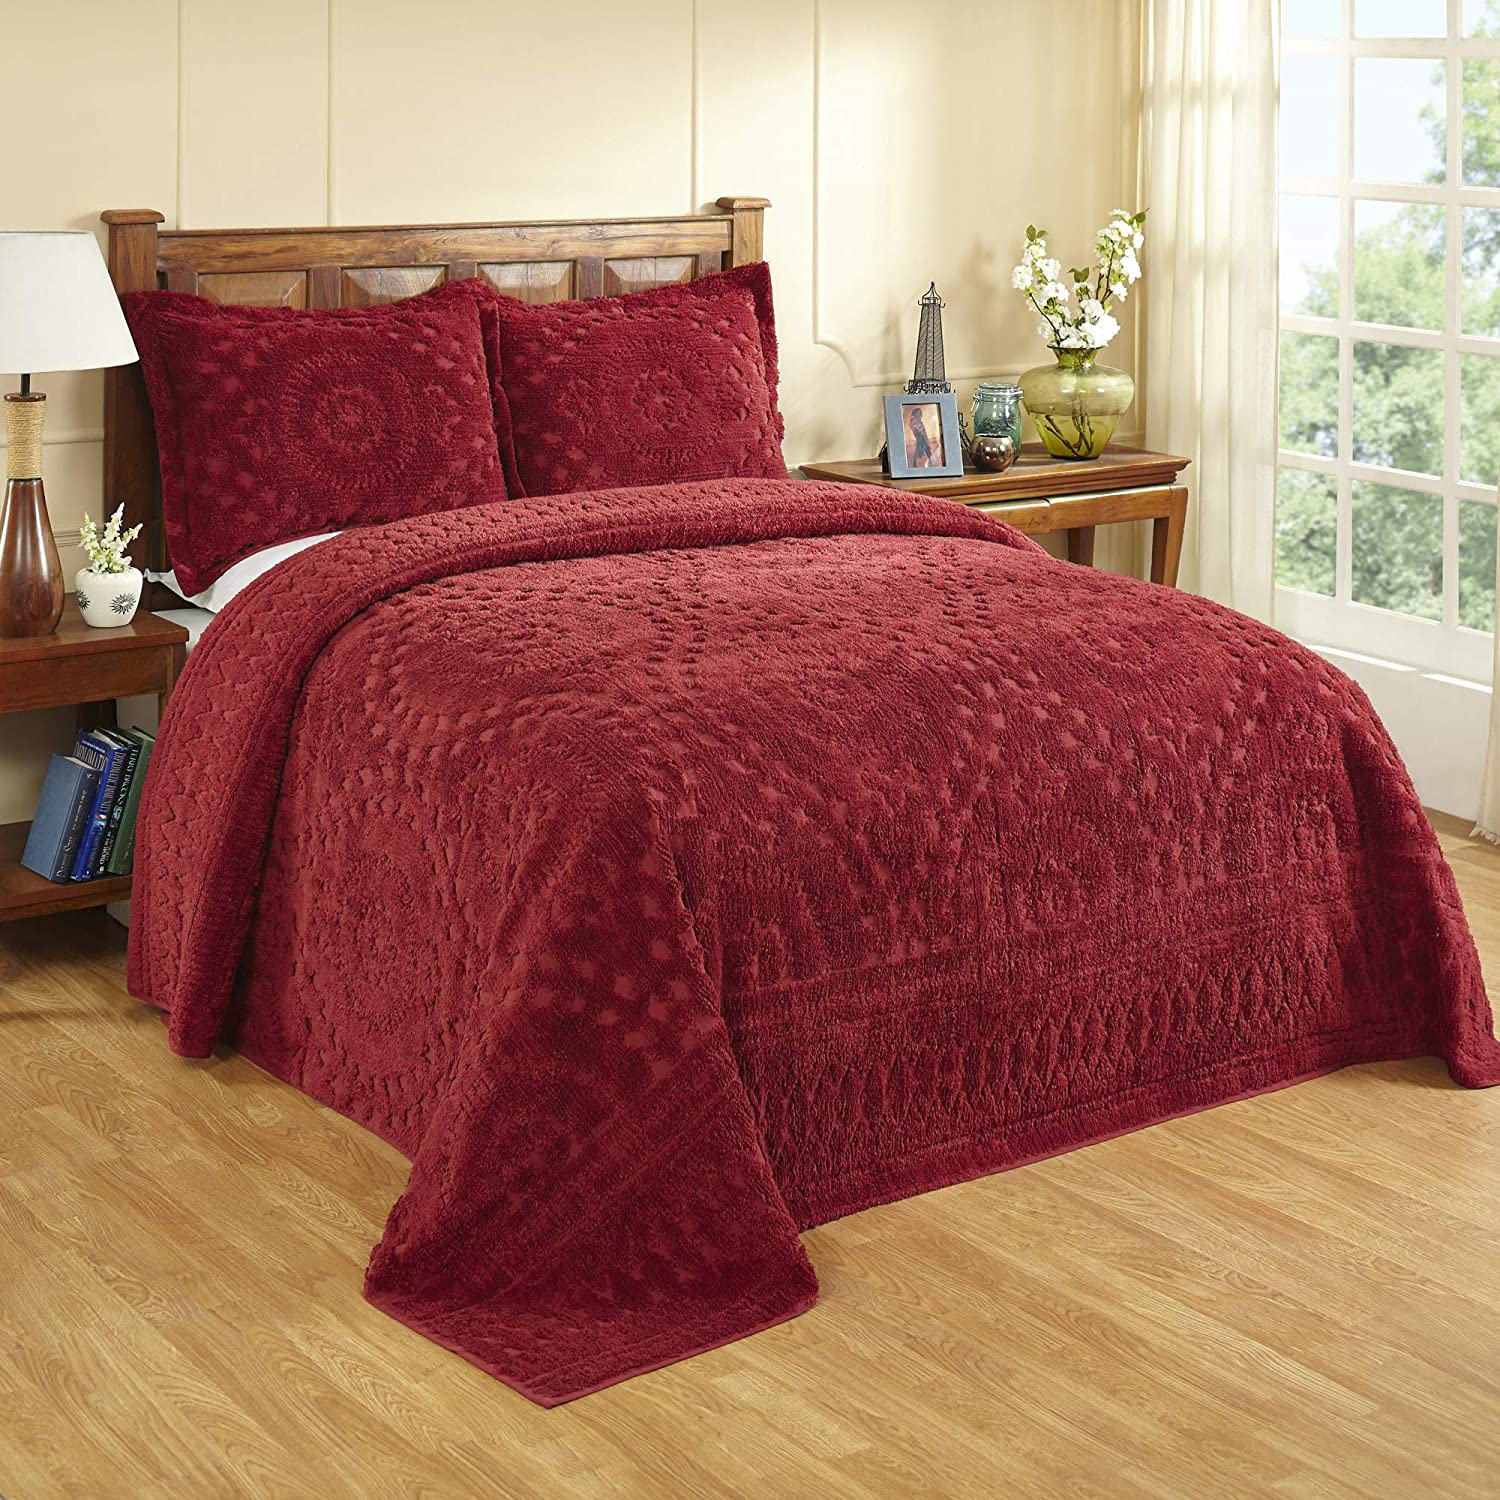 Better Trends Rio Collection in Floral Design 100% Cotton Tufted Chenille, King Bedspread, Burgundy